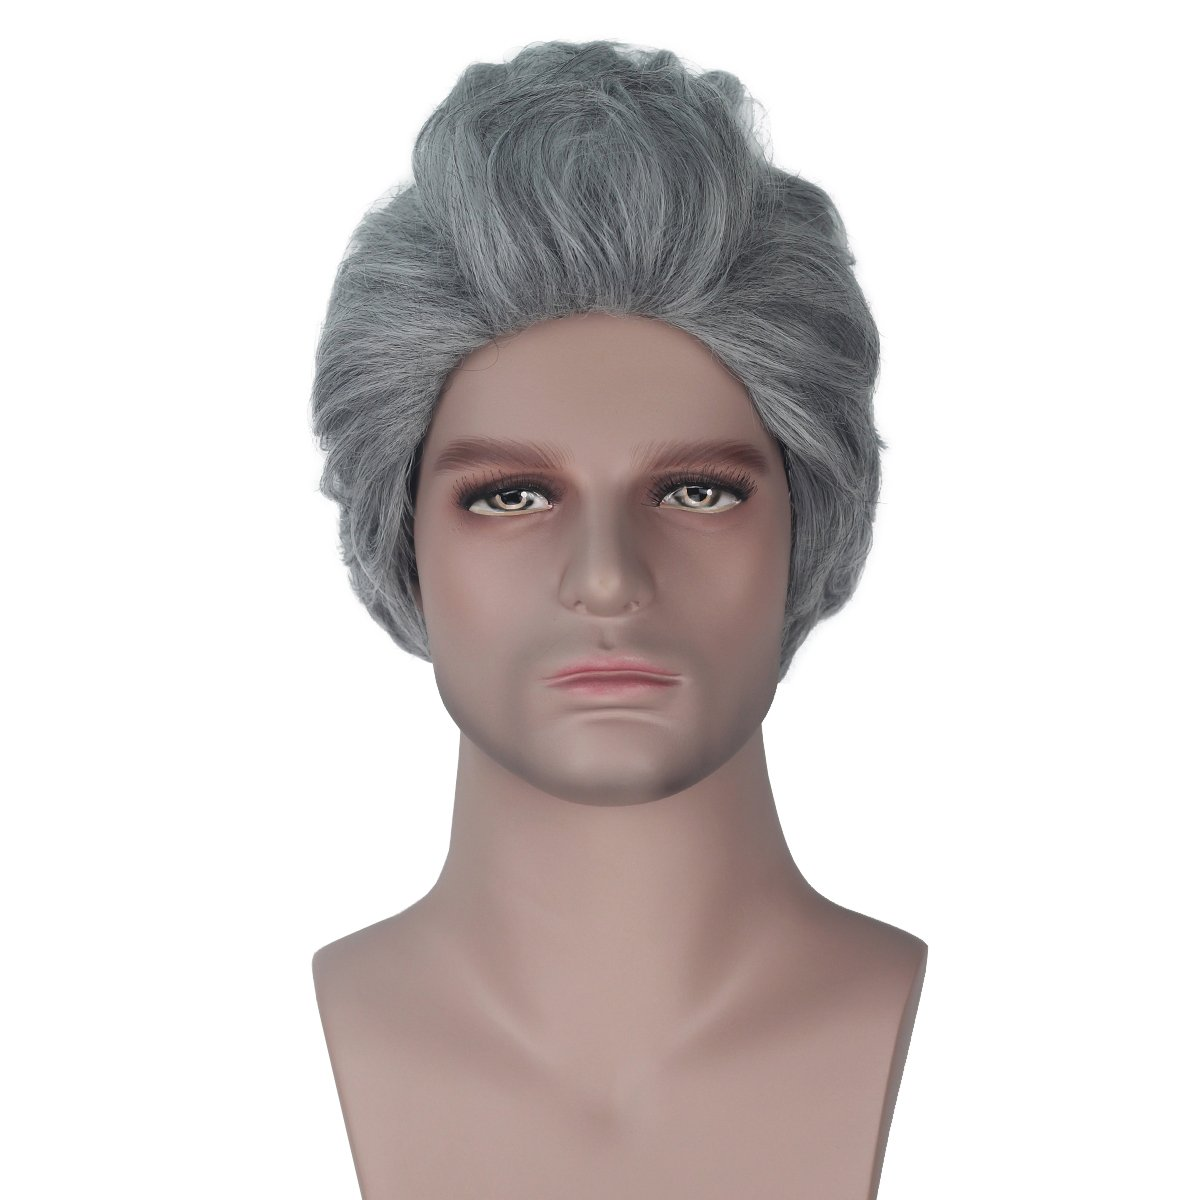 Miss U Hair Men Synthetic 30cm Short Wave Silver Grey Color Movie Cosplay Costume Wig for Halloween